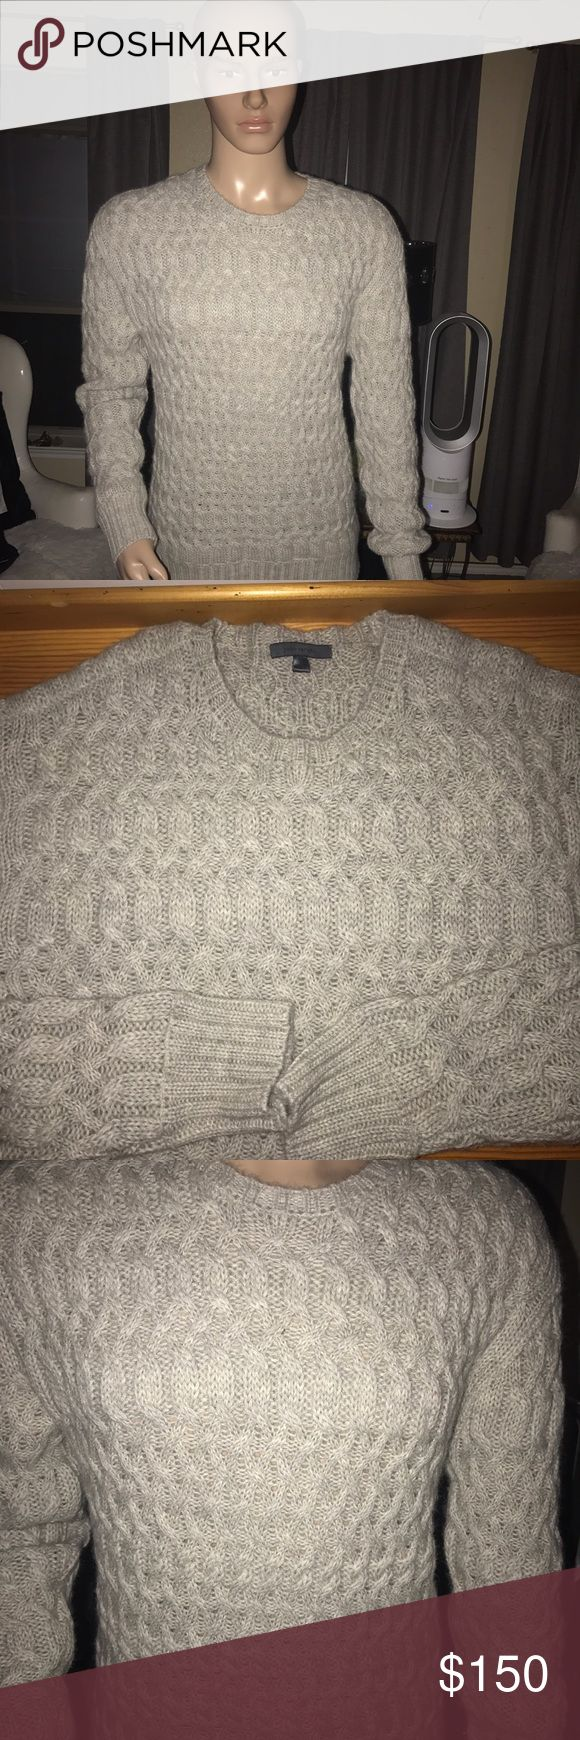 Men's cashmere sweater Men's cashmere sweater size large in excellent condition. John Varvatos Sweaters